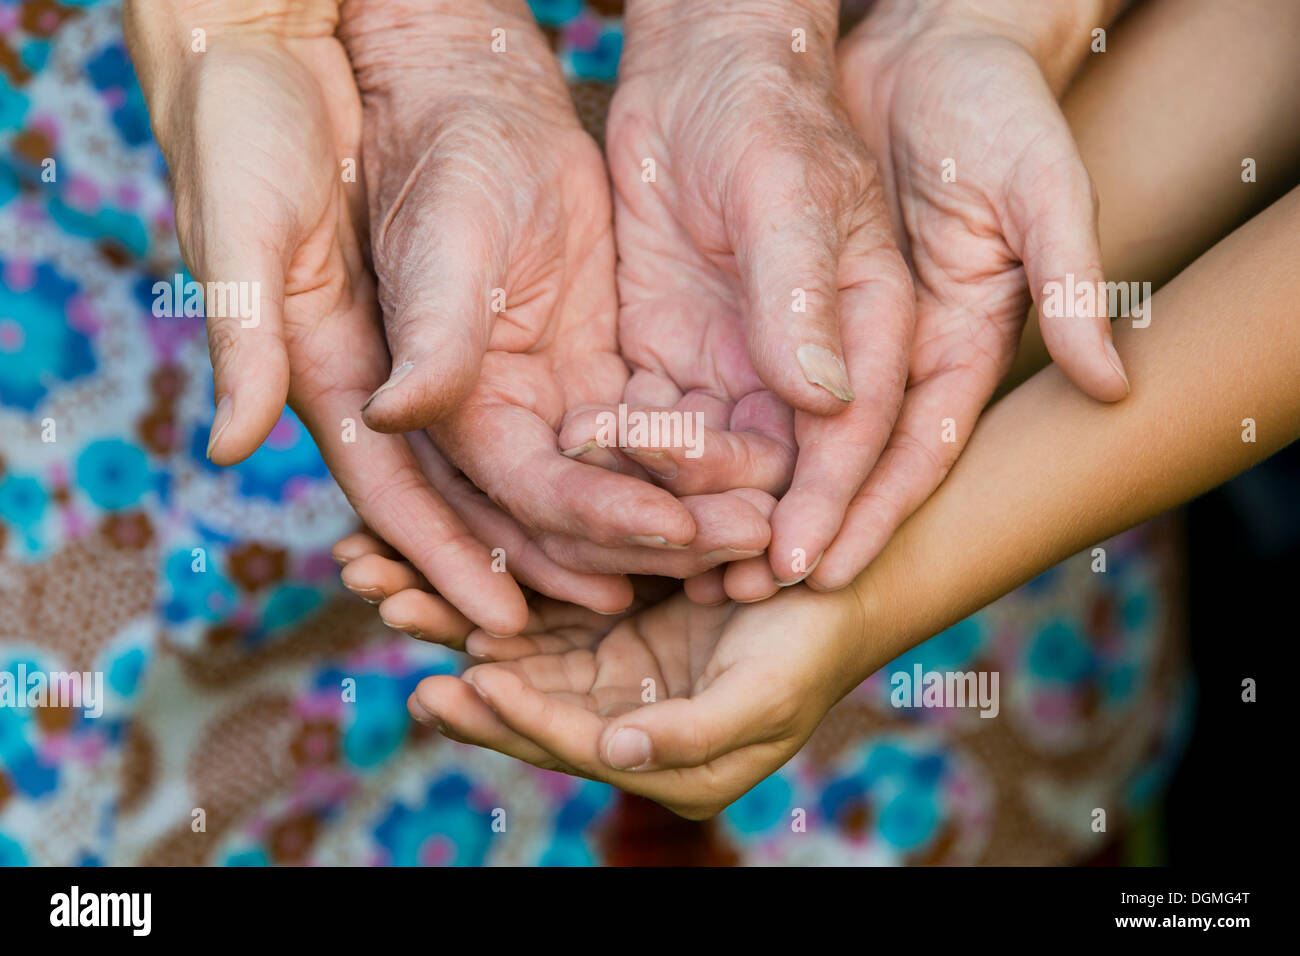 Hands of an adult, an elderly woman and a child Stock Photo